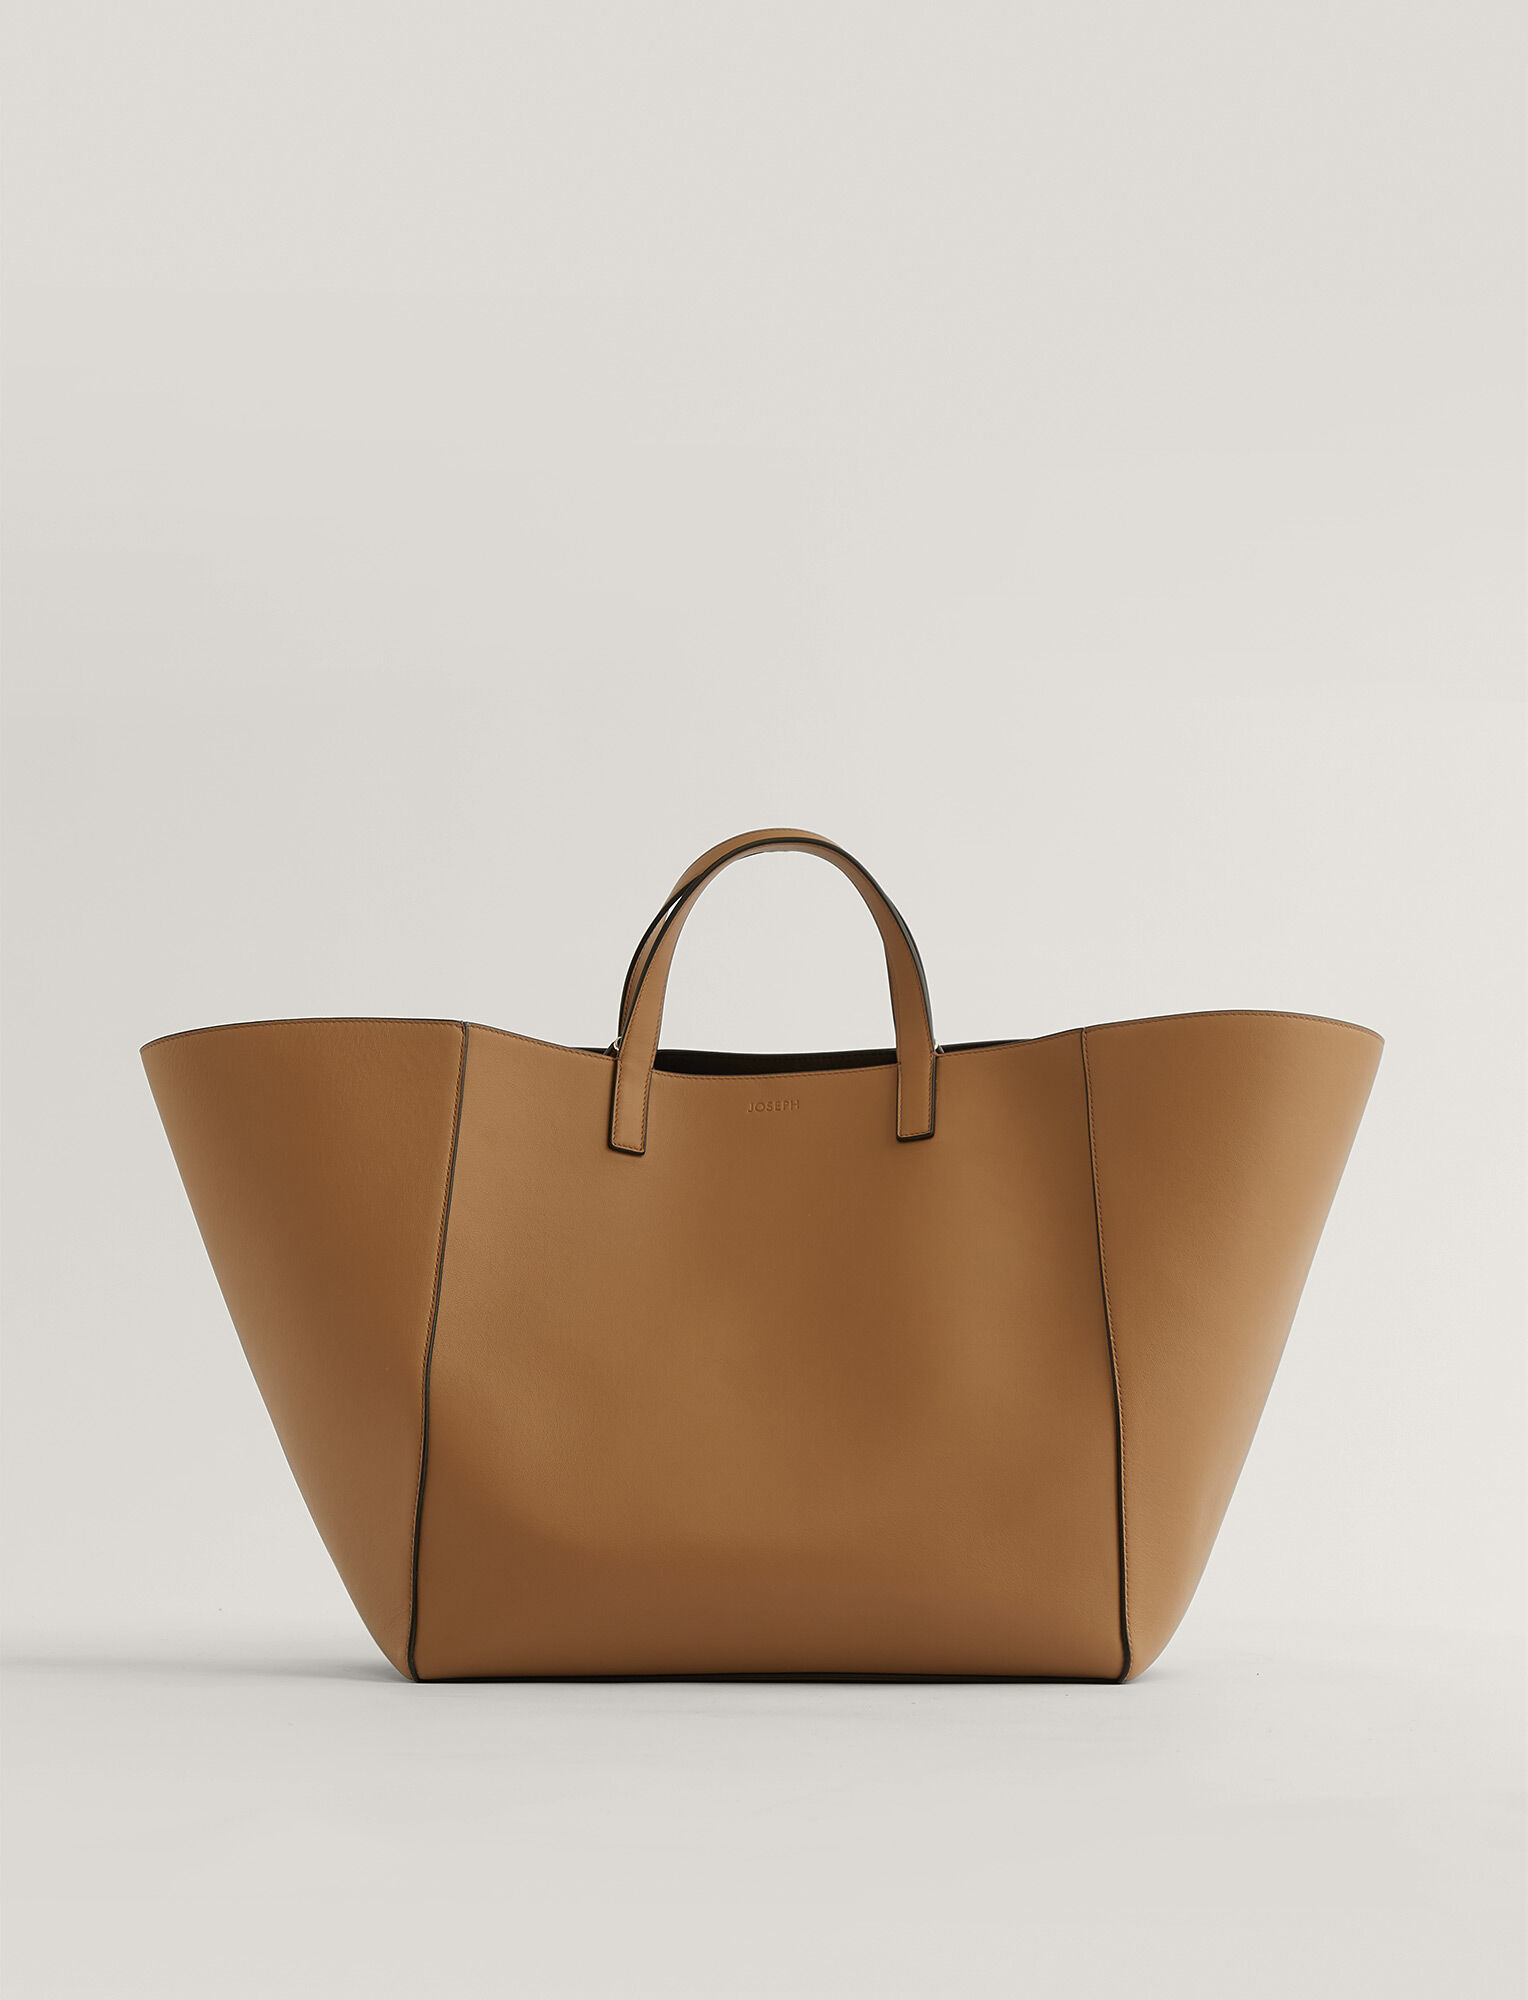 Joseph, Tote Bag, in SADDLE